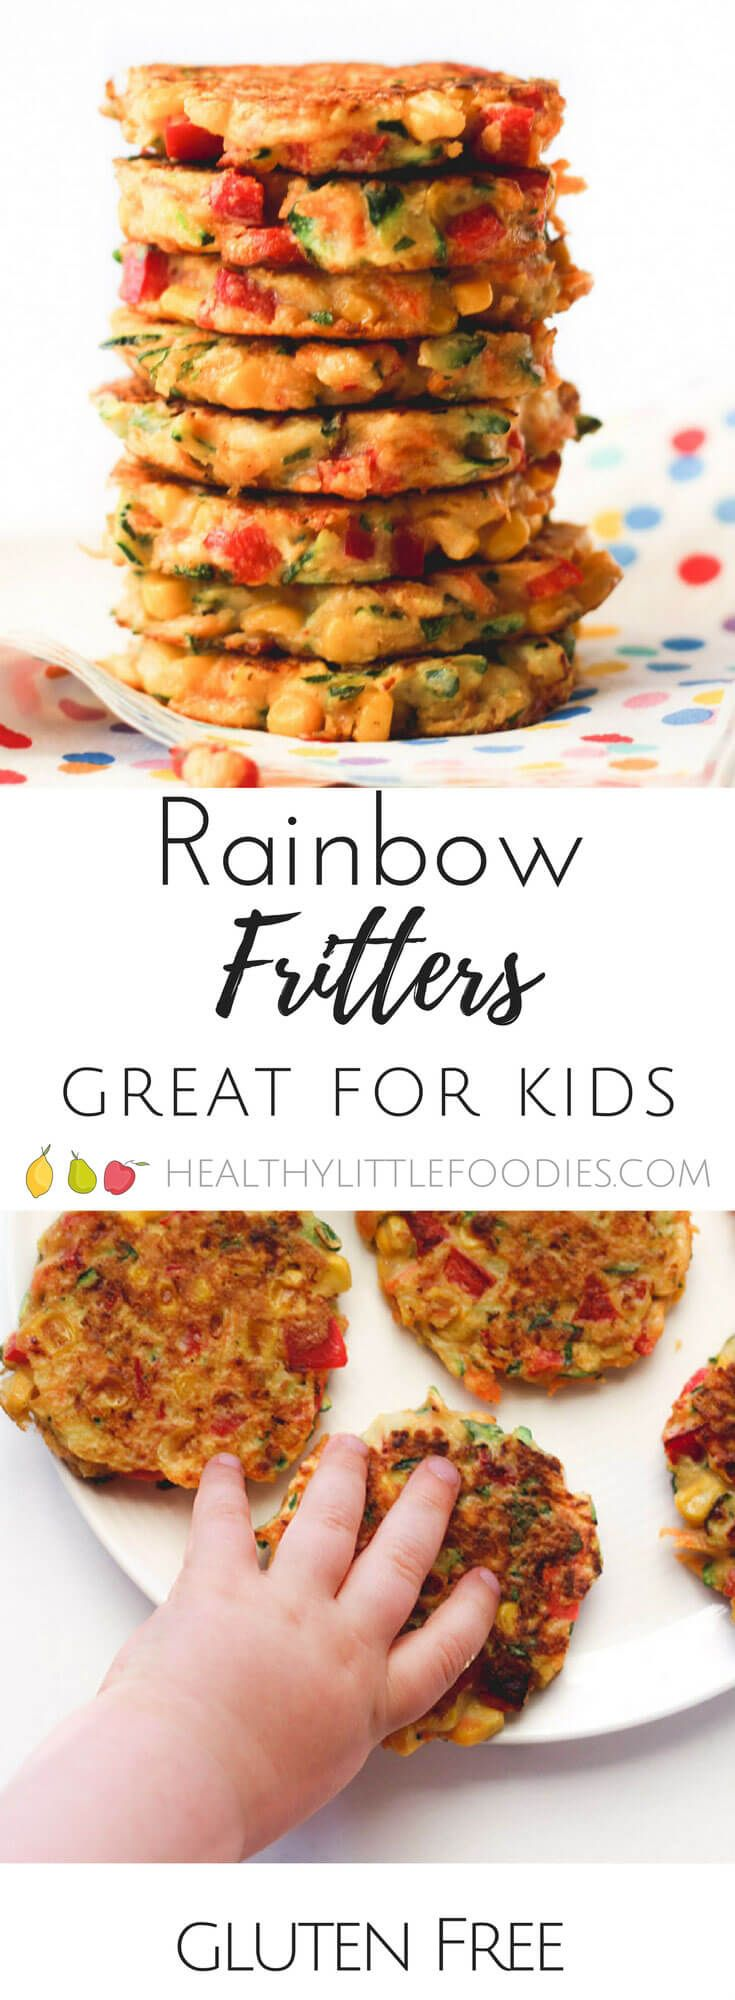 rainbow fritters are Packed with veggies for nutrients and made with chick pea flour for extra protein. Gluten free.